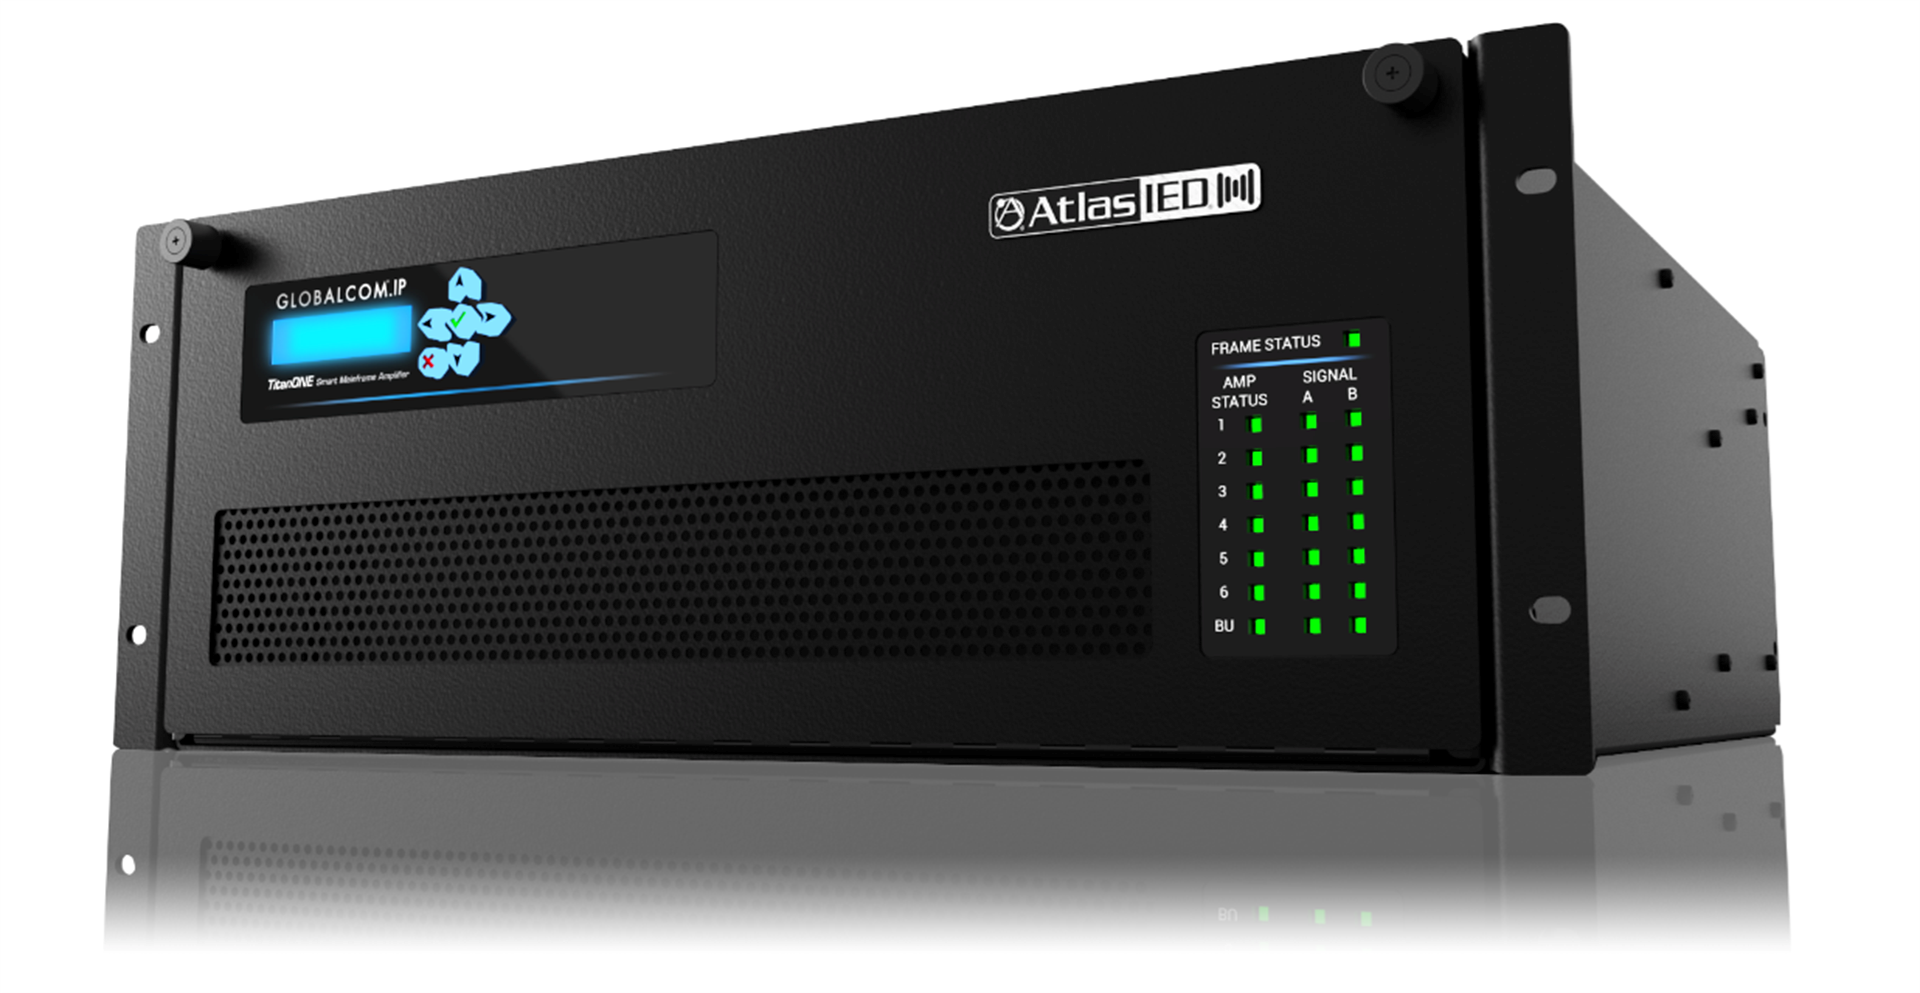 AtlasIED's NEW TitanONE Smart Mainframe Amplifier System